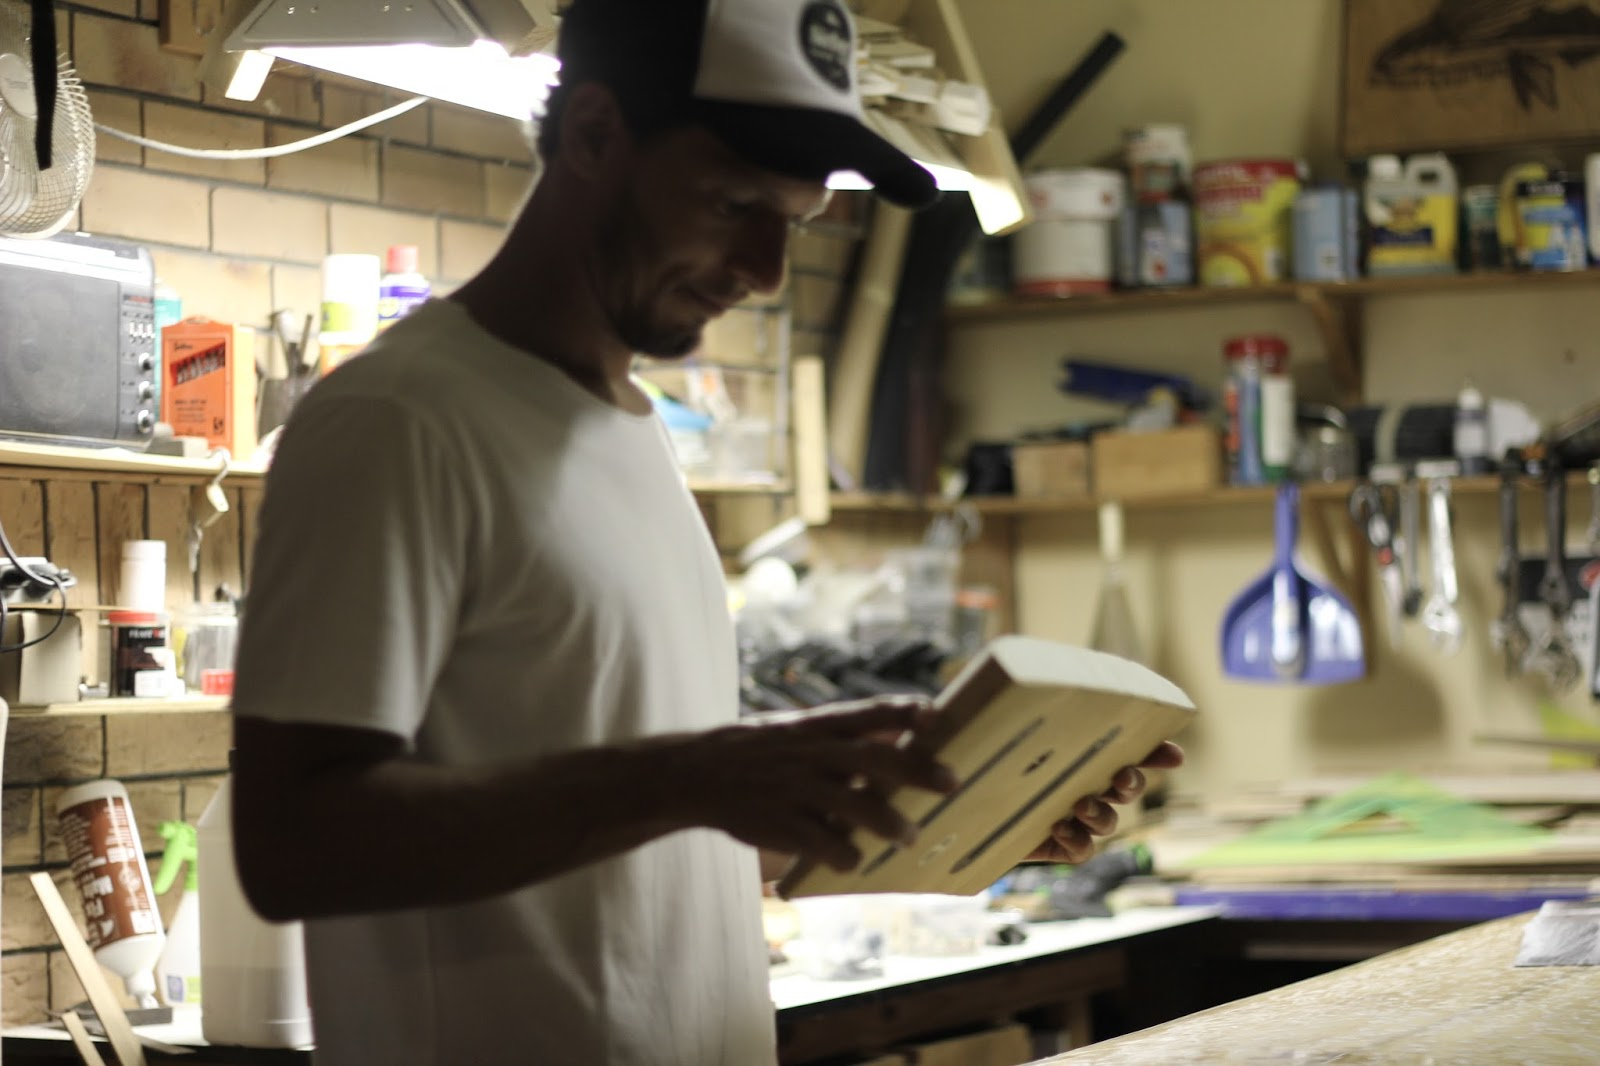 20-03-2016-australia-siebert-surfboards-10